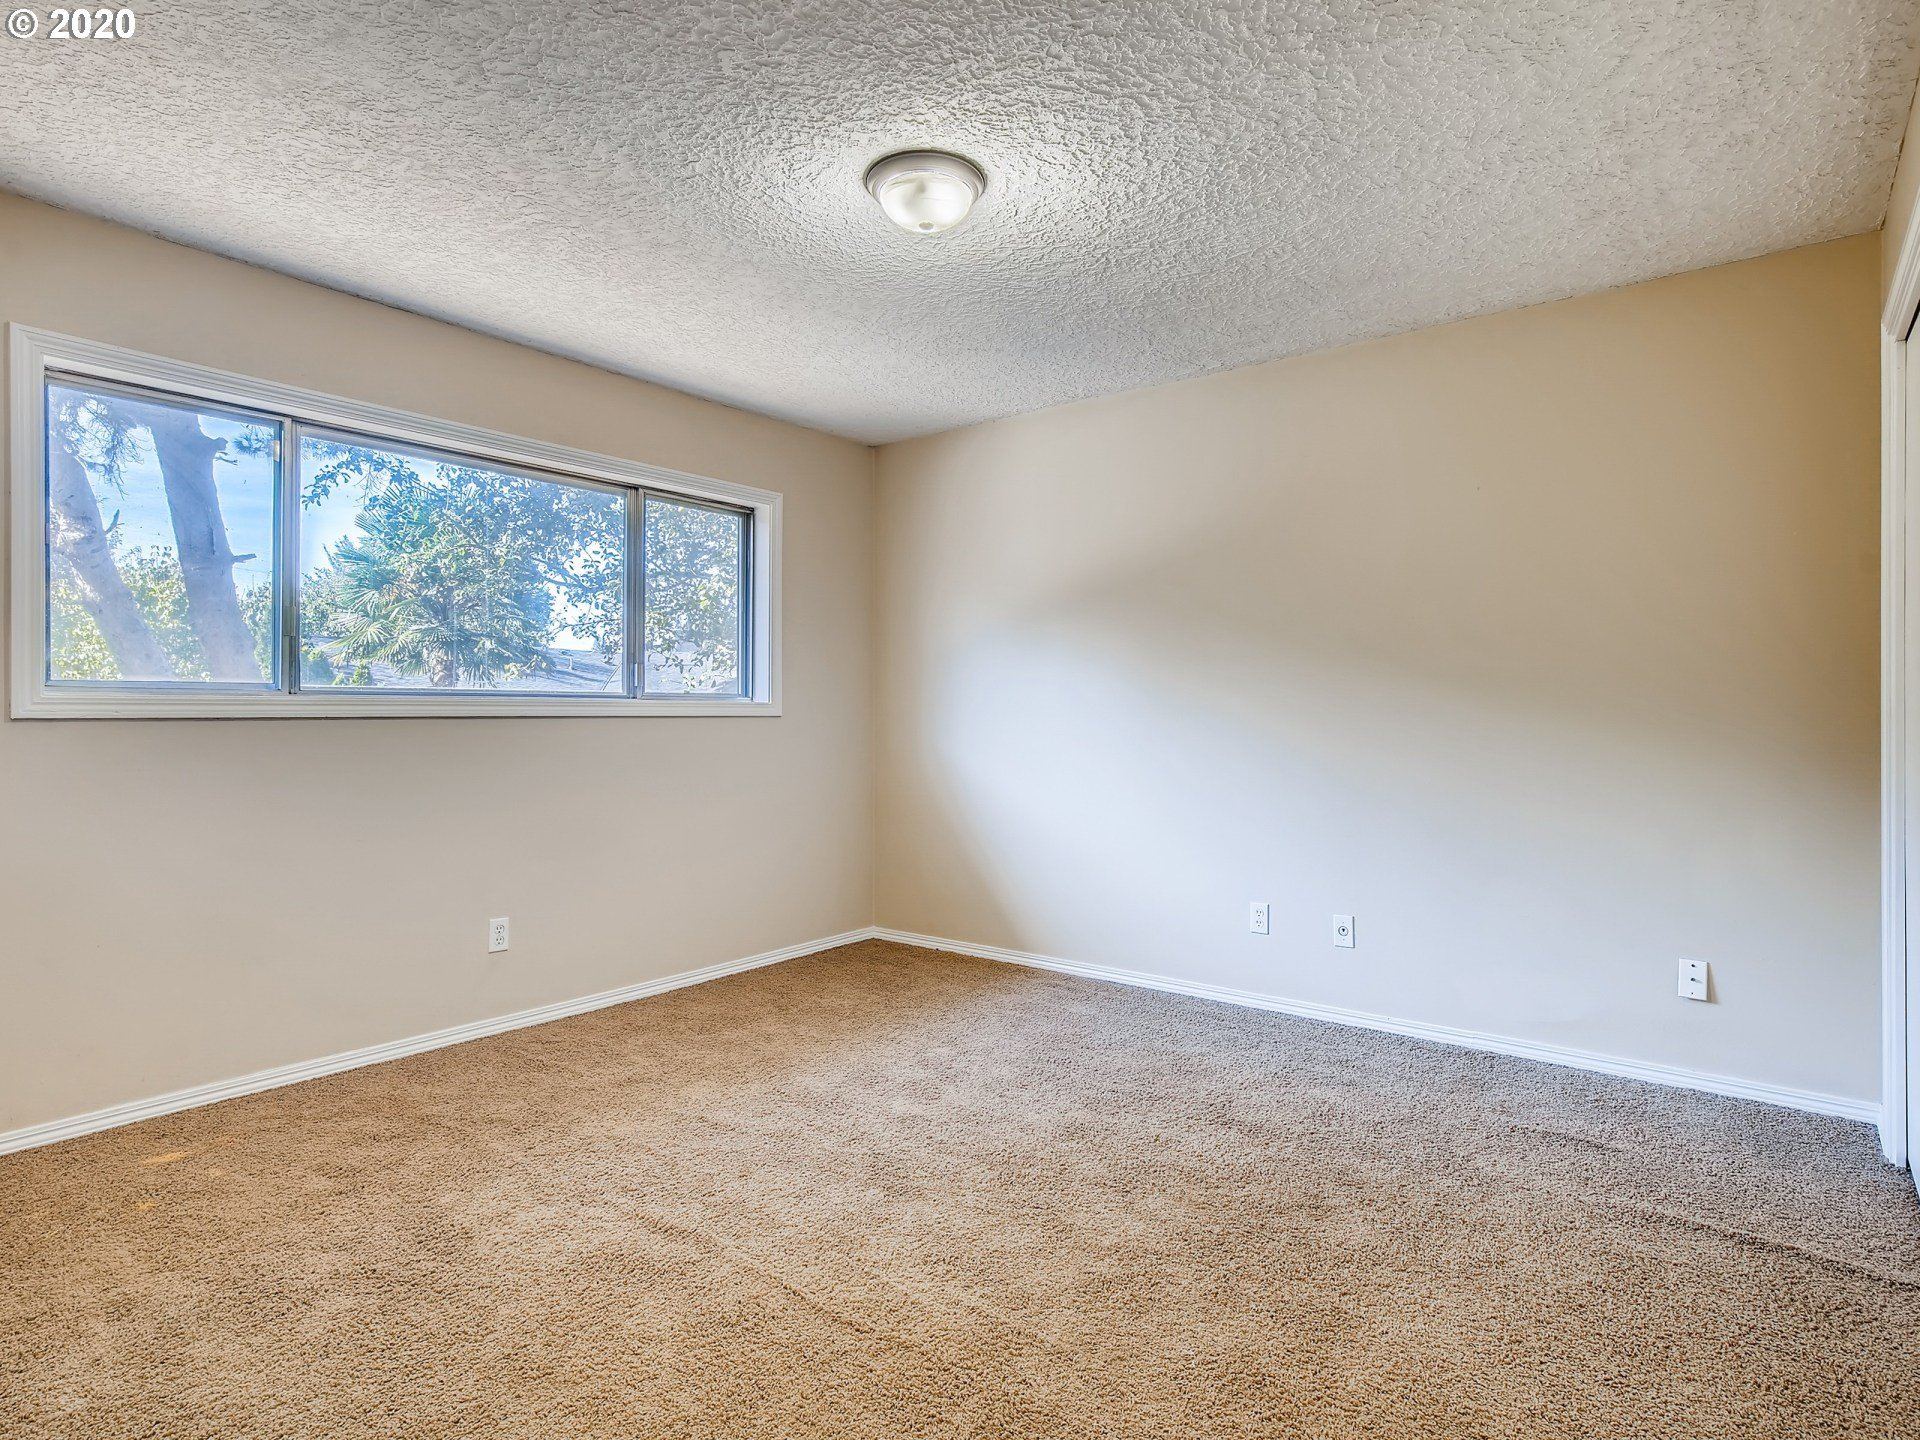 3411 NW 122nd St, Vancouver, WA 98685